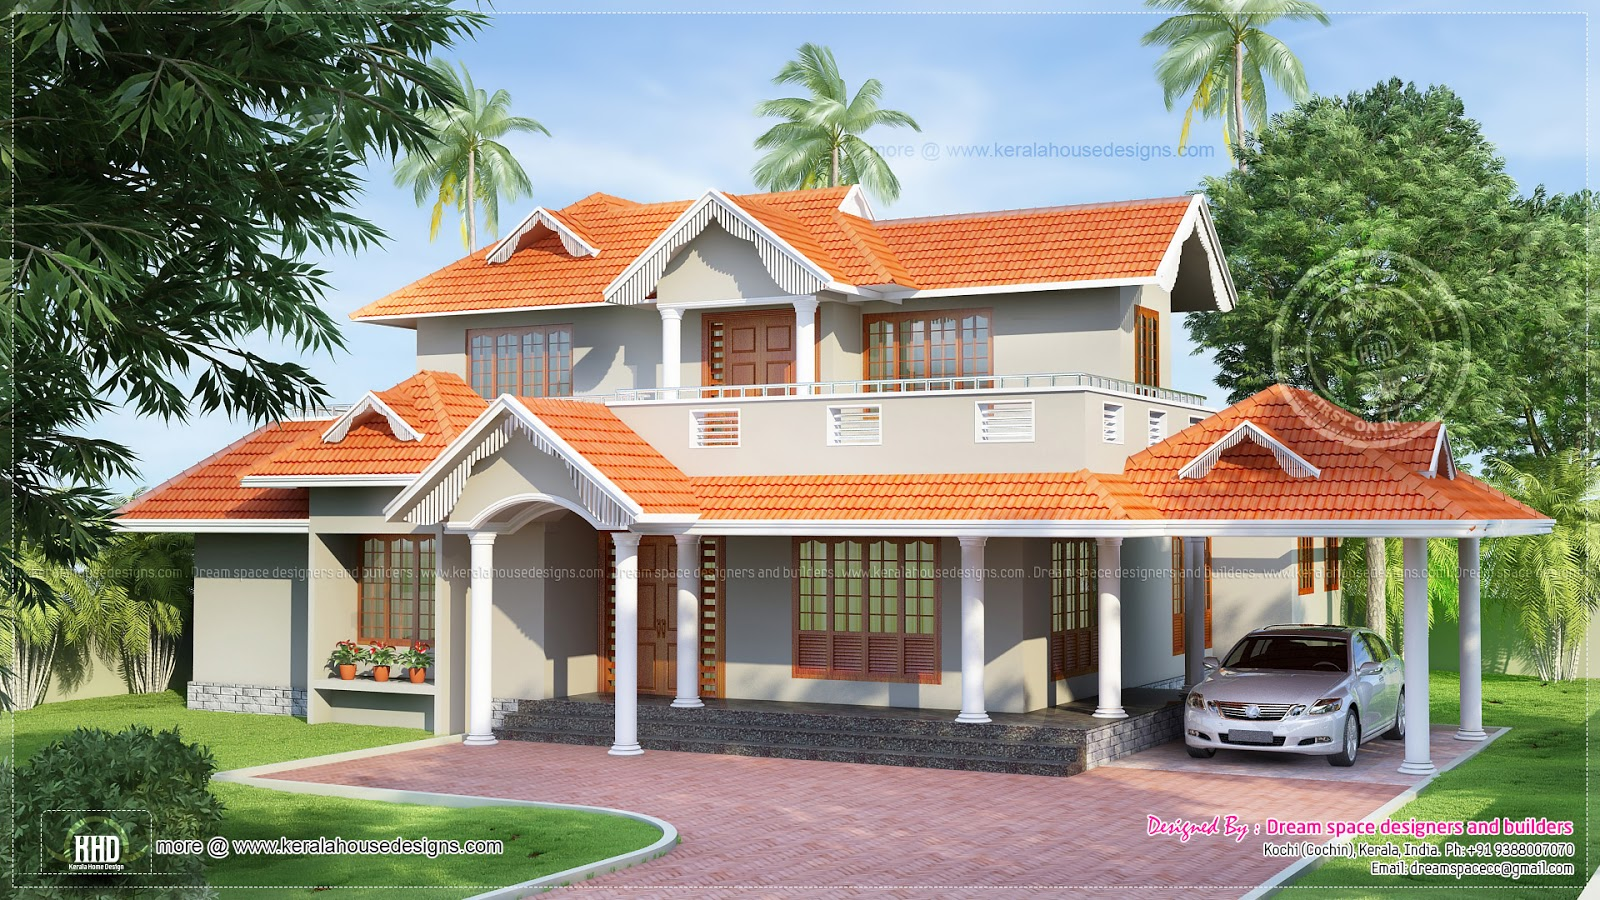 Slopping Style Tiles Roof House In 2300 Home